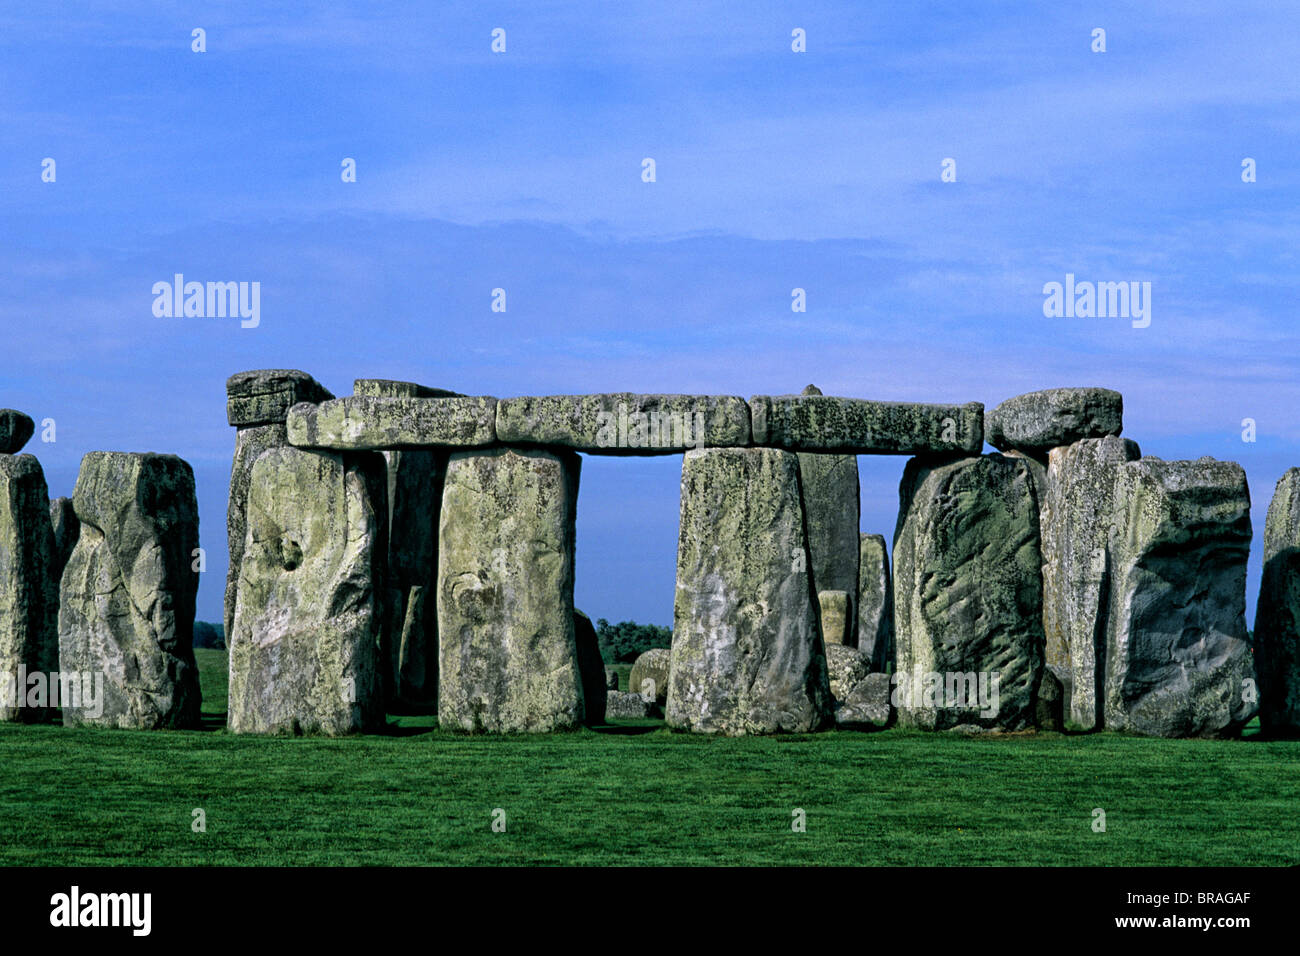 close-up abstract of the stones at Stonehenge in England Stock Photo